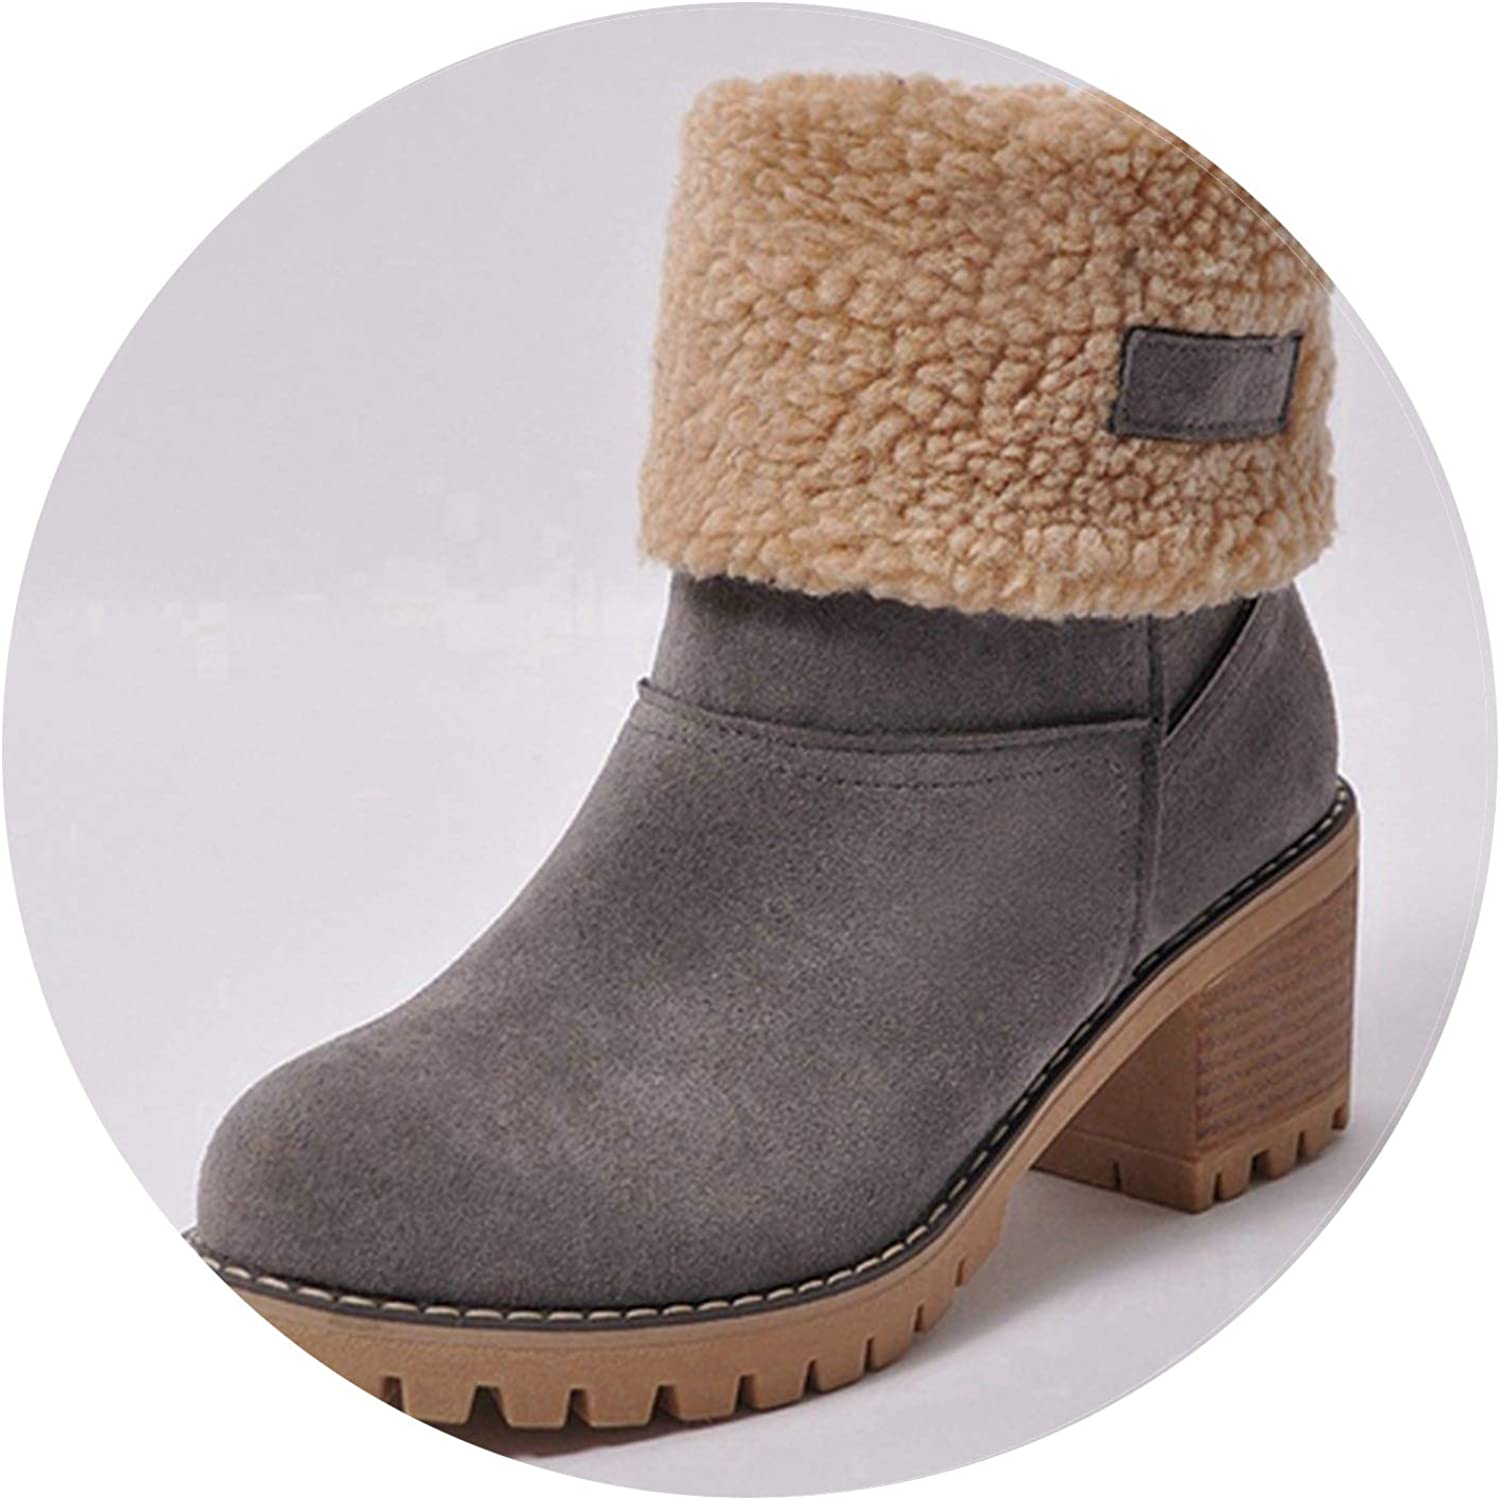 Pretty-sexy-toys Women Boots Female Winter shoes Woman Fur Warm Snow Boots Square Heels Bota Feminina Ankle Boots women,Grey,12